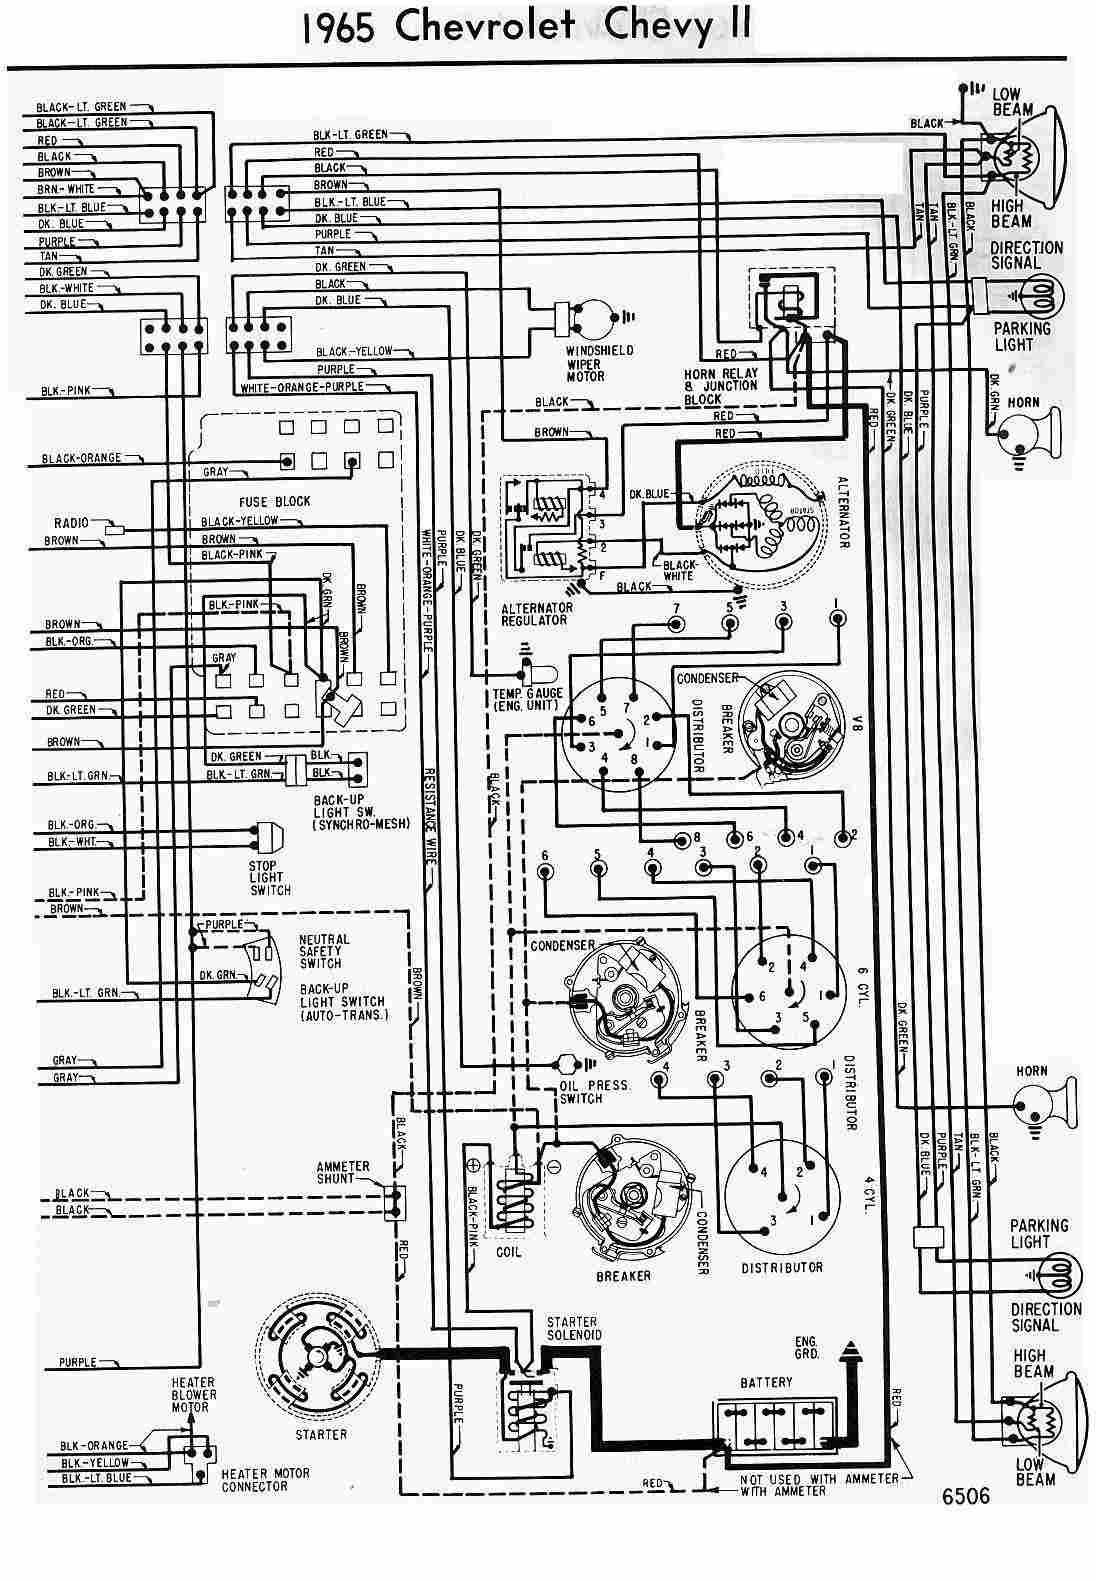 Chevrolet Car Manuals Wiring Diagrams Pdf Fault Codes 1965 Chevy Corvette Diagram Download